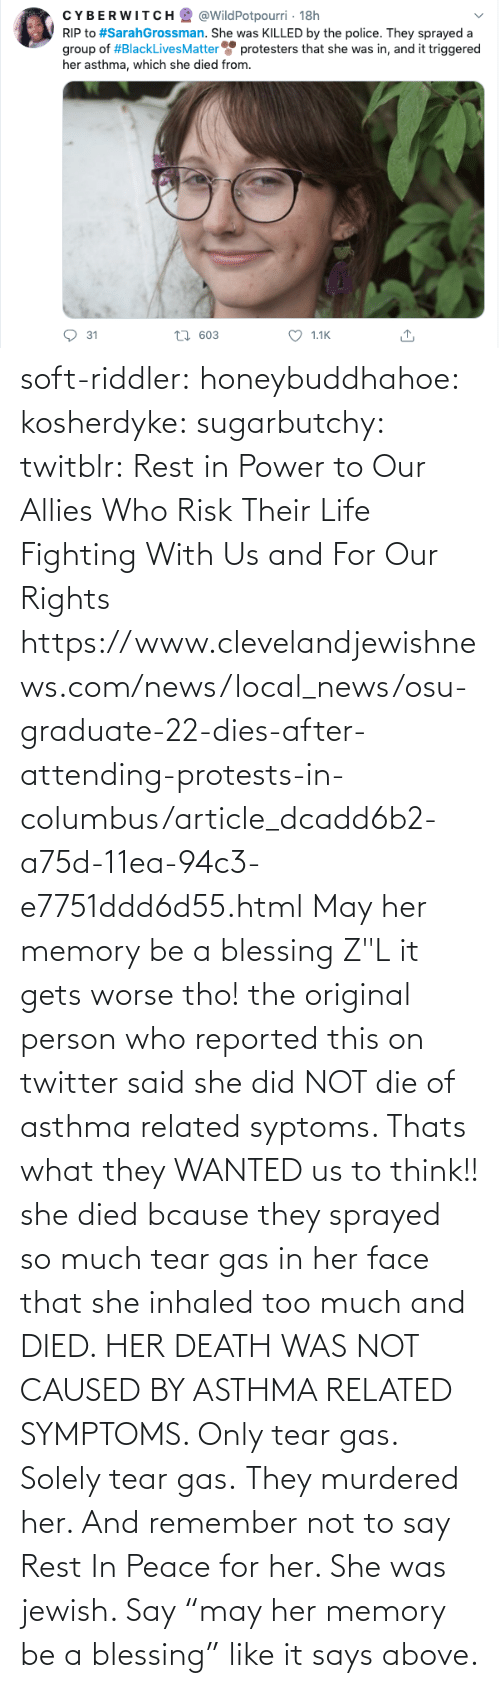 "html: soft-riddler:  honeybuddhahoe:  kosherdyke:  sugarbutchy:  twitblr: Rest in Power to Our Allies Who Risk Their Life Fighting With Us and For Our Rights https://www.clevelandjewishnews.com/news/local_news/osu-graduate-22-dies-after-attending-protests-in-columbus/article_dcadd6b2-a75d-11ea-94c3-e7751ddd6d55.html    May her memory be a blessing Z""L  it gets worse tho! the original person who reported this on twitter said she did NOT die of asthma related syptoms. Thats what they WANTED us to think!! she died bcause they sprayed so much tear gas in her face that she inhaled too much and DIED. HER DEATH WAS NOT CAUSED BY ASTHMA RELATED SYMPTOMS. Only tear gas. Solely tear gas. They murdered her.     And remember not to say Rest In Peace for her. She was jewish. Say ""may her memory be a blessing"" like it says above."